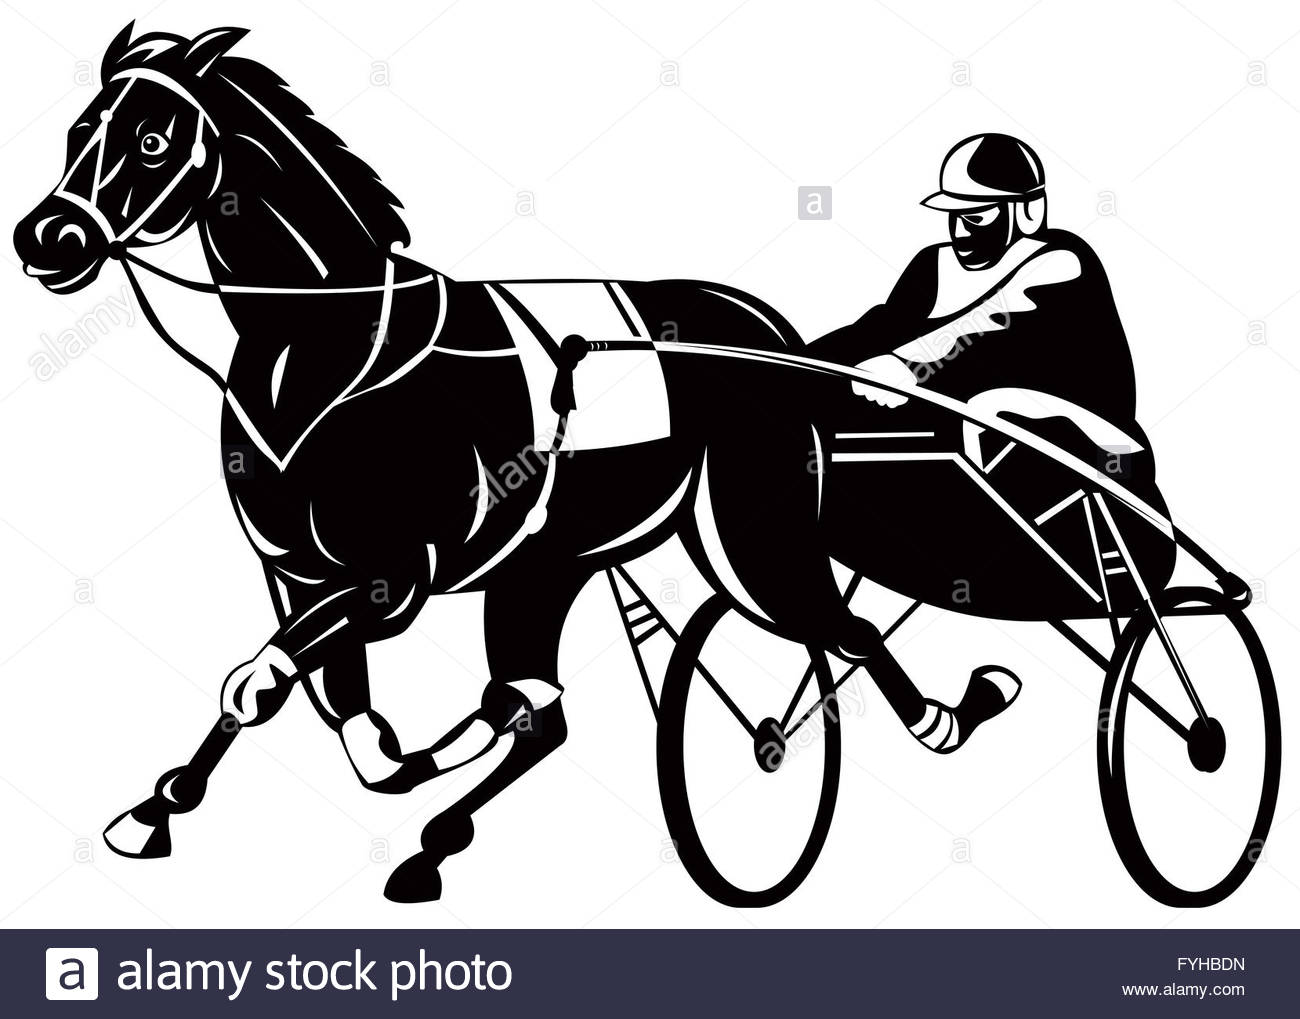 1300x1019 Horse And Jockey Harness Racing Stock Photo, Royalty Free Image